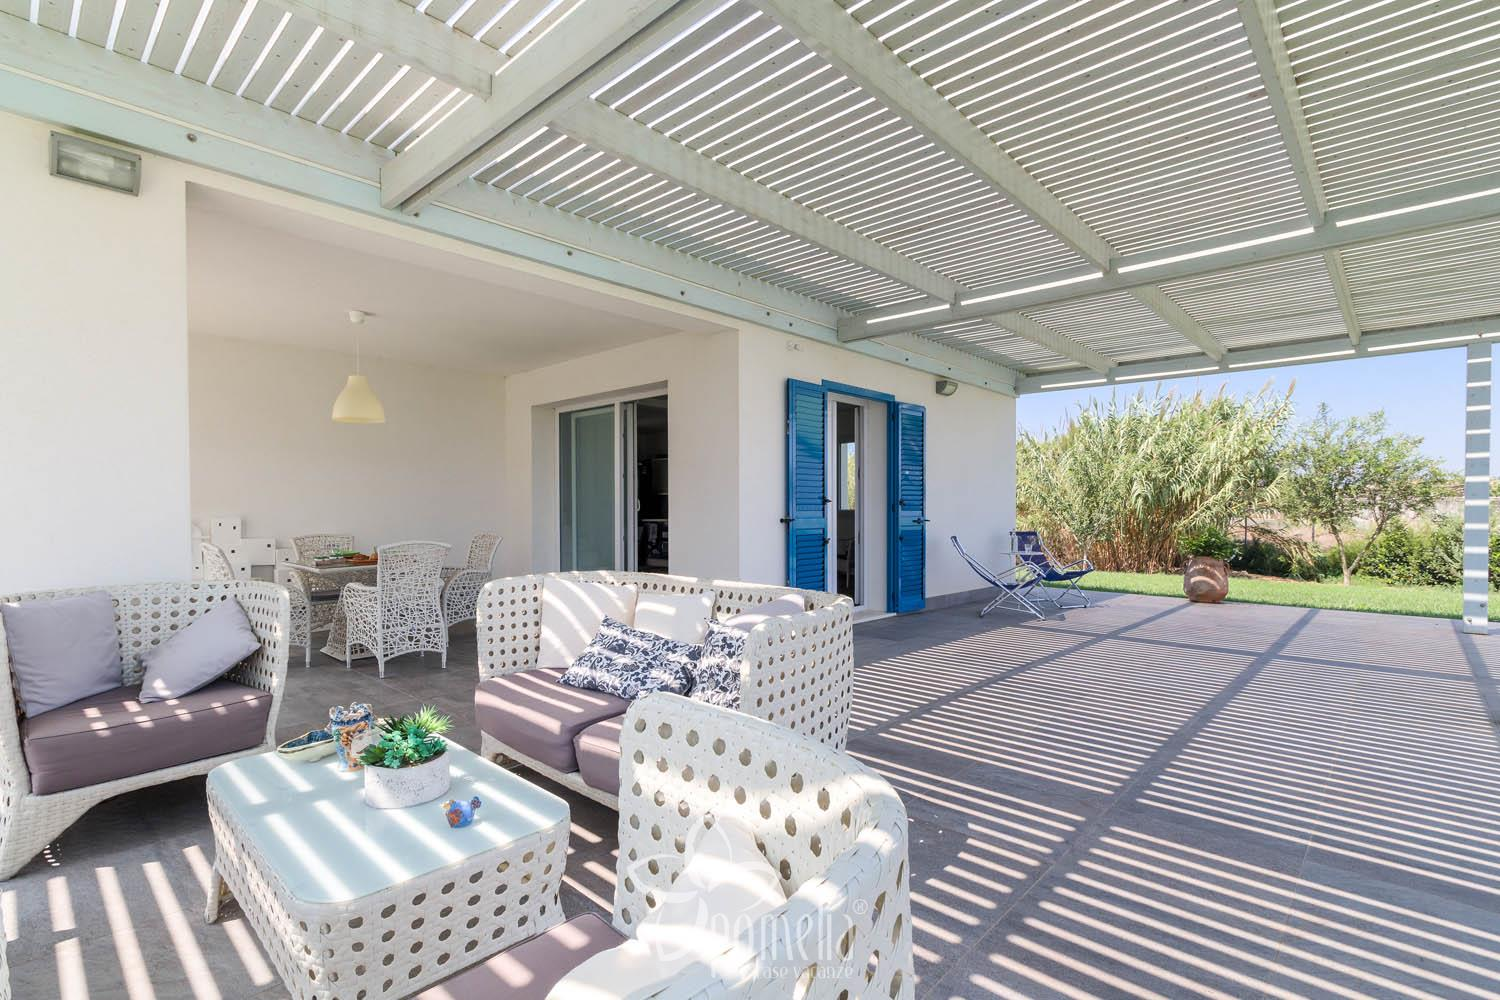 Dafne, villa with pool and garden 300 meters from the beach of Caucana - Veranda